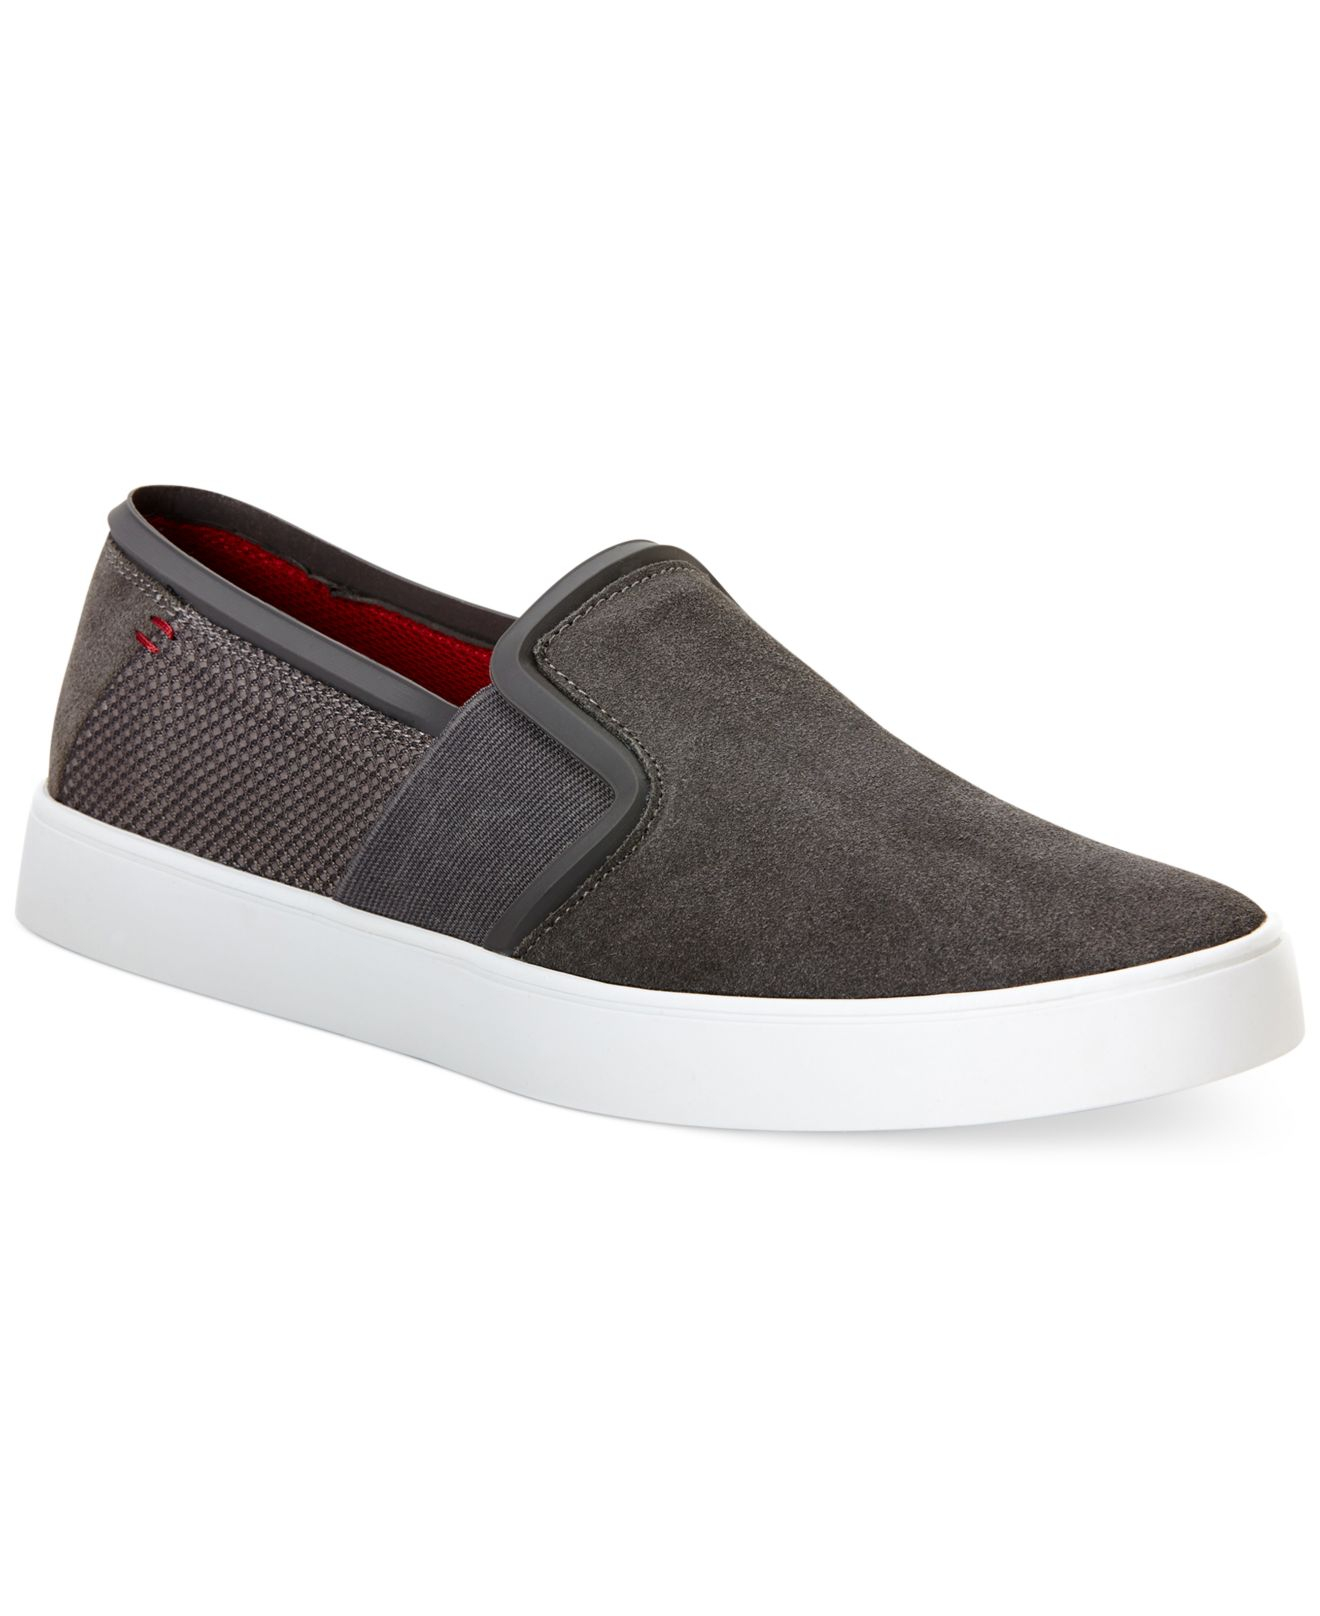 calvin klein jeans lark slip on sneakers in gray for men. Black Bedroom Furniture Sets. Home Design Ideas